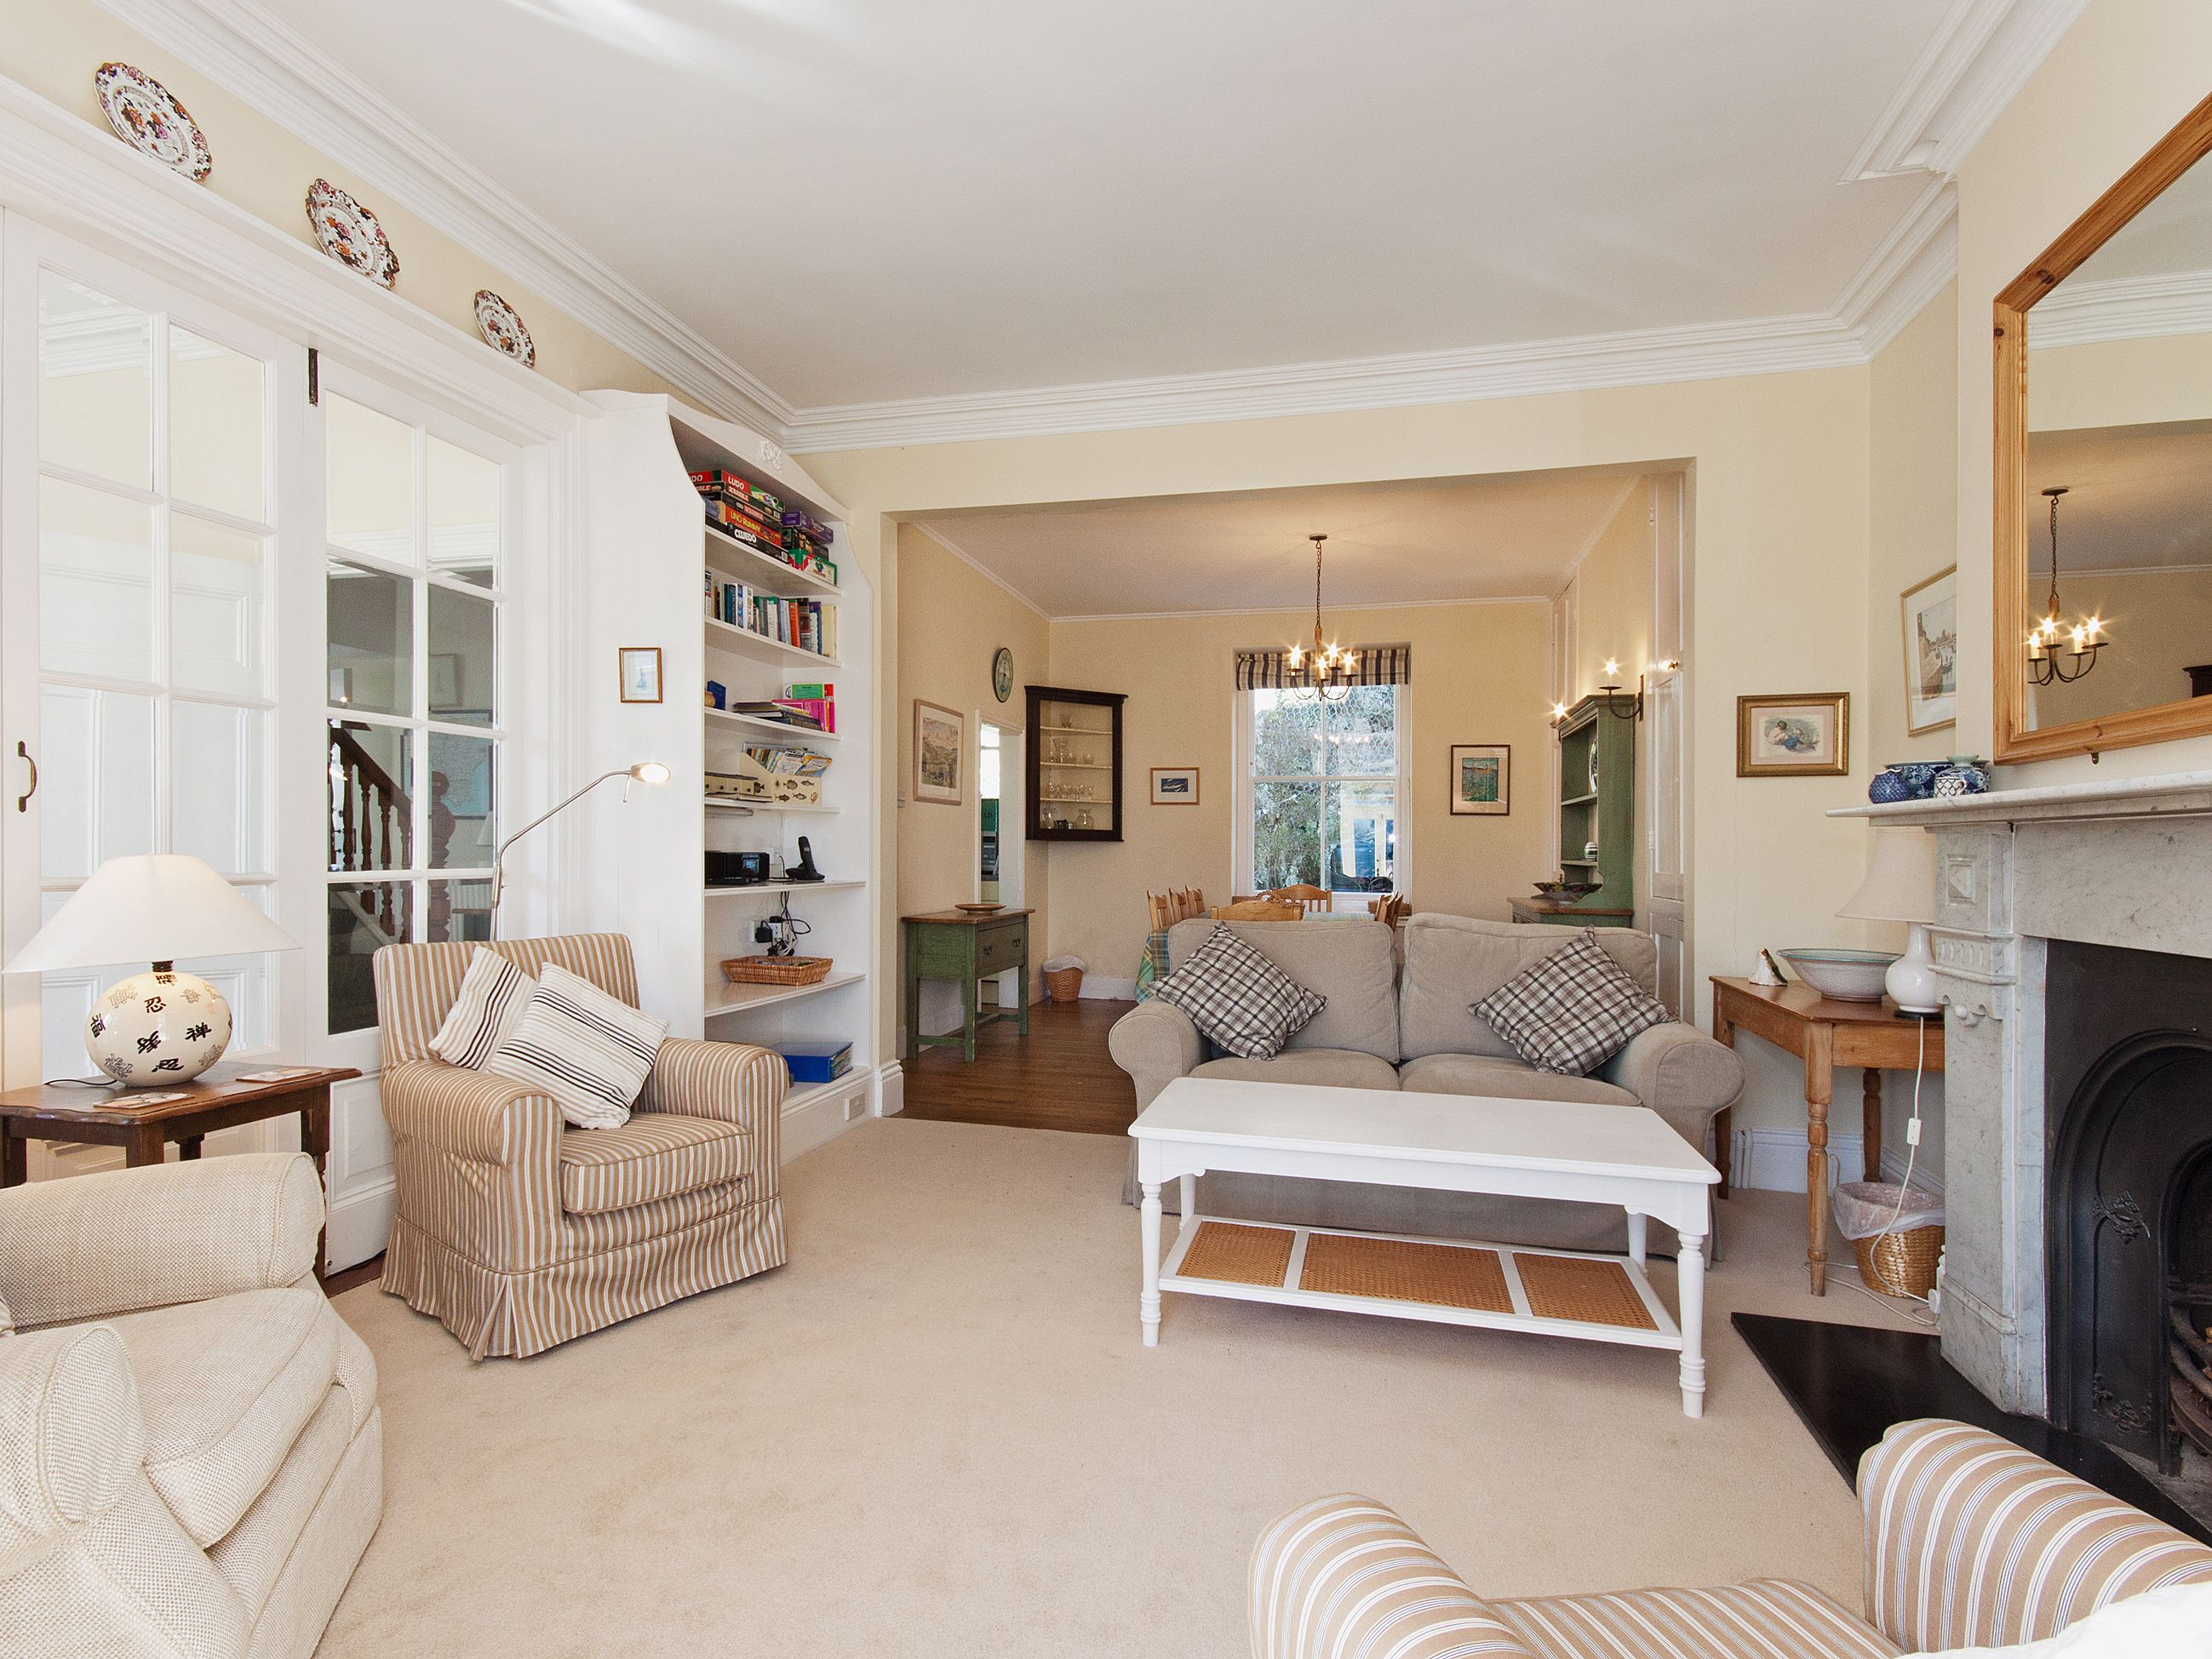 A substantial Victorian semidetached house equipped to a